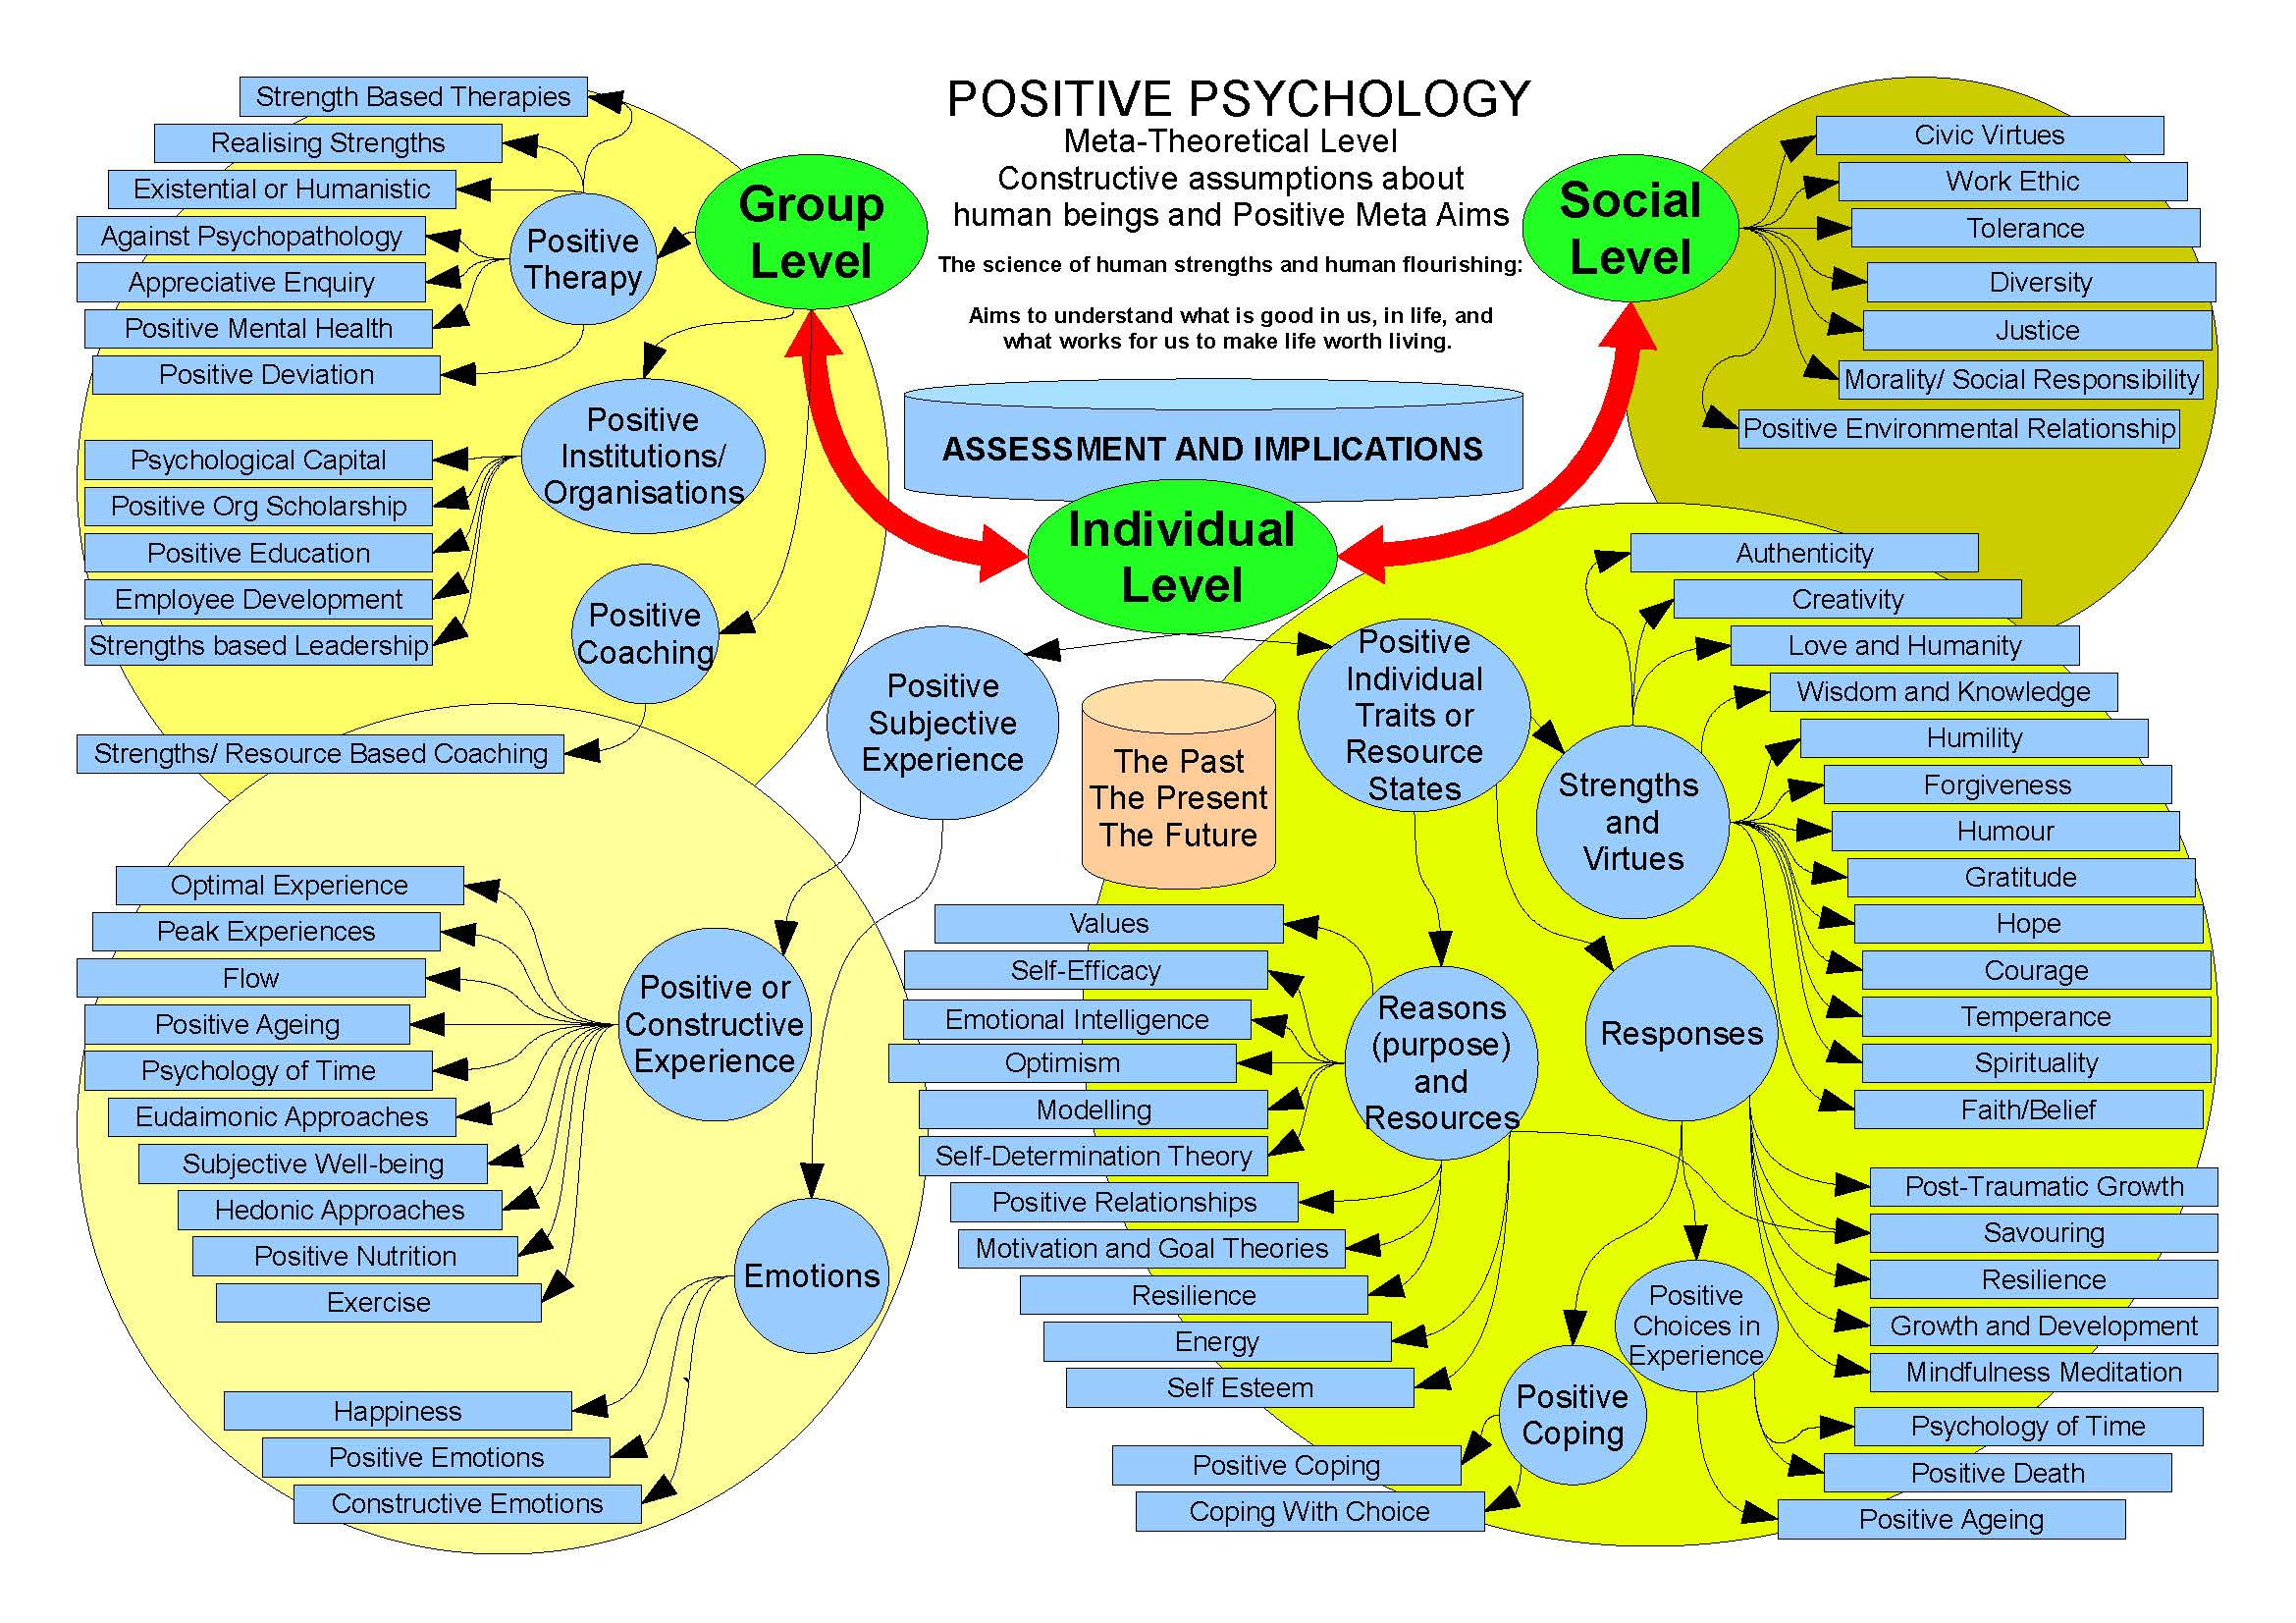 positive psychology in the workplace Positive psychology and the workplace: an overview the impact on the current economic recession on the us workforce has been devastating what kinds of positive emotions can help people envision and create a more hopeful future.